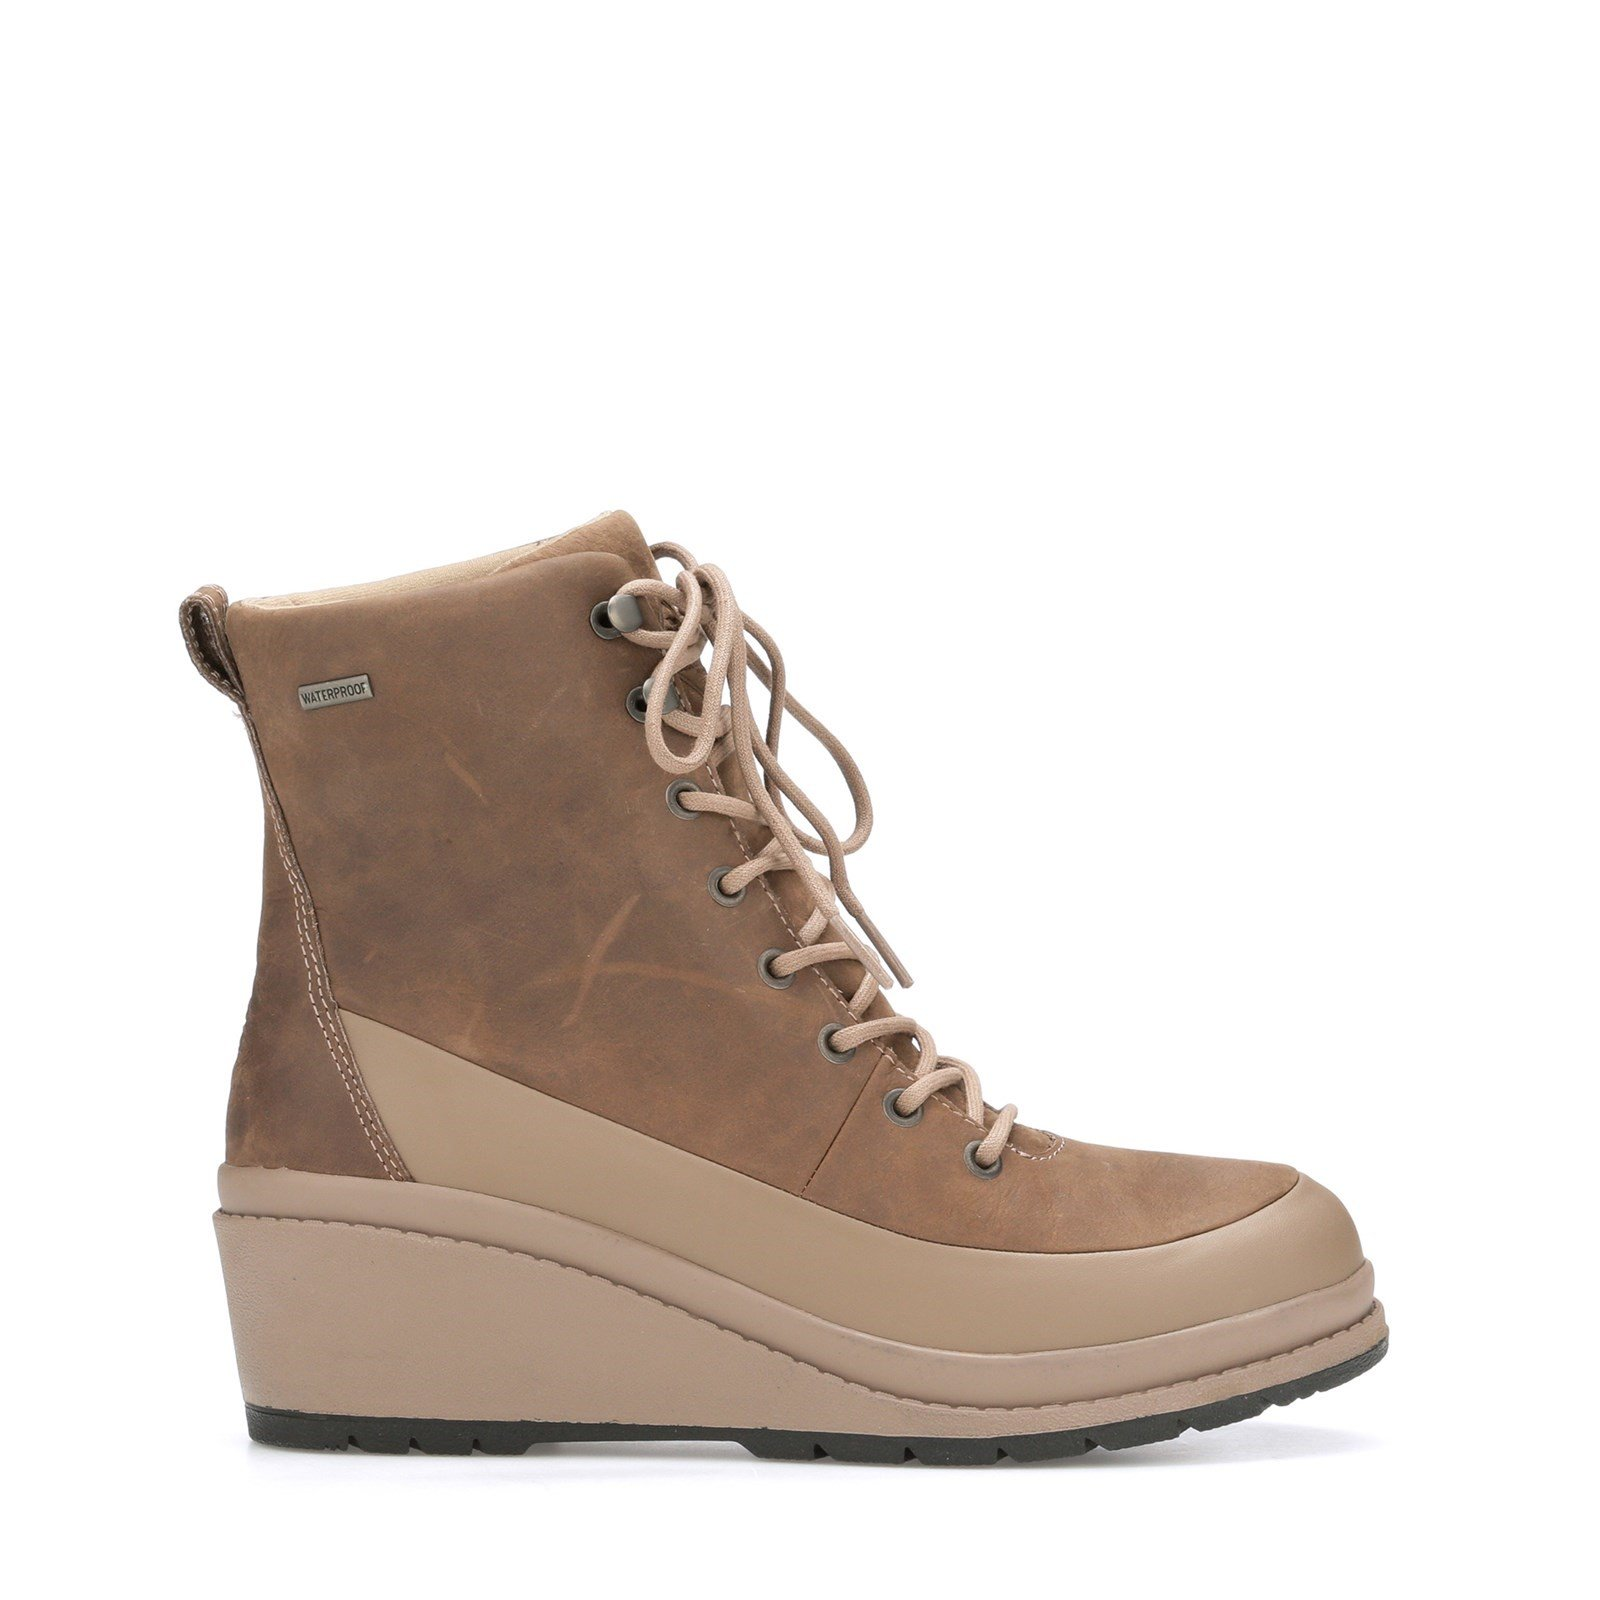 Muck Boots Women's Liberty Leather Ankle Boots Various Colours 31813 - Taupe 6.5